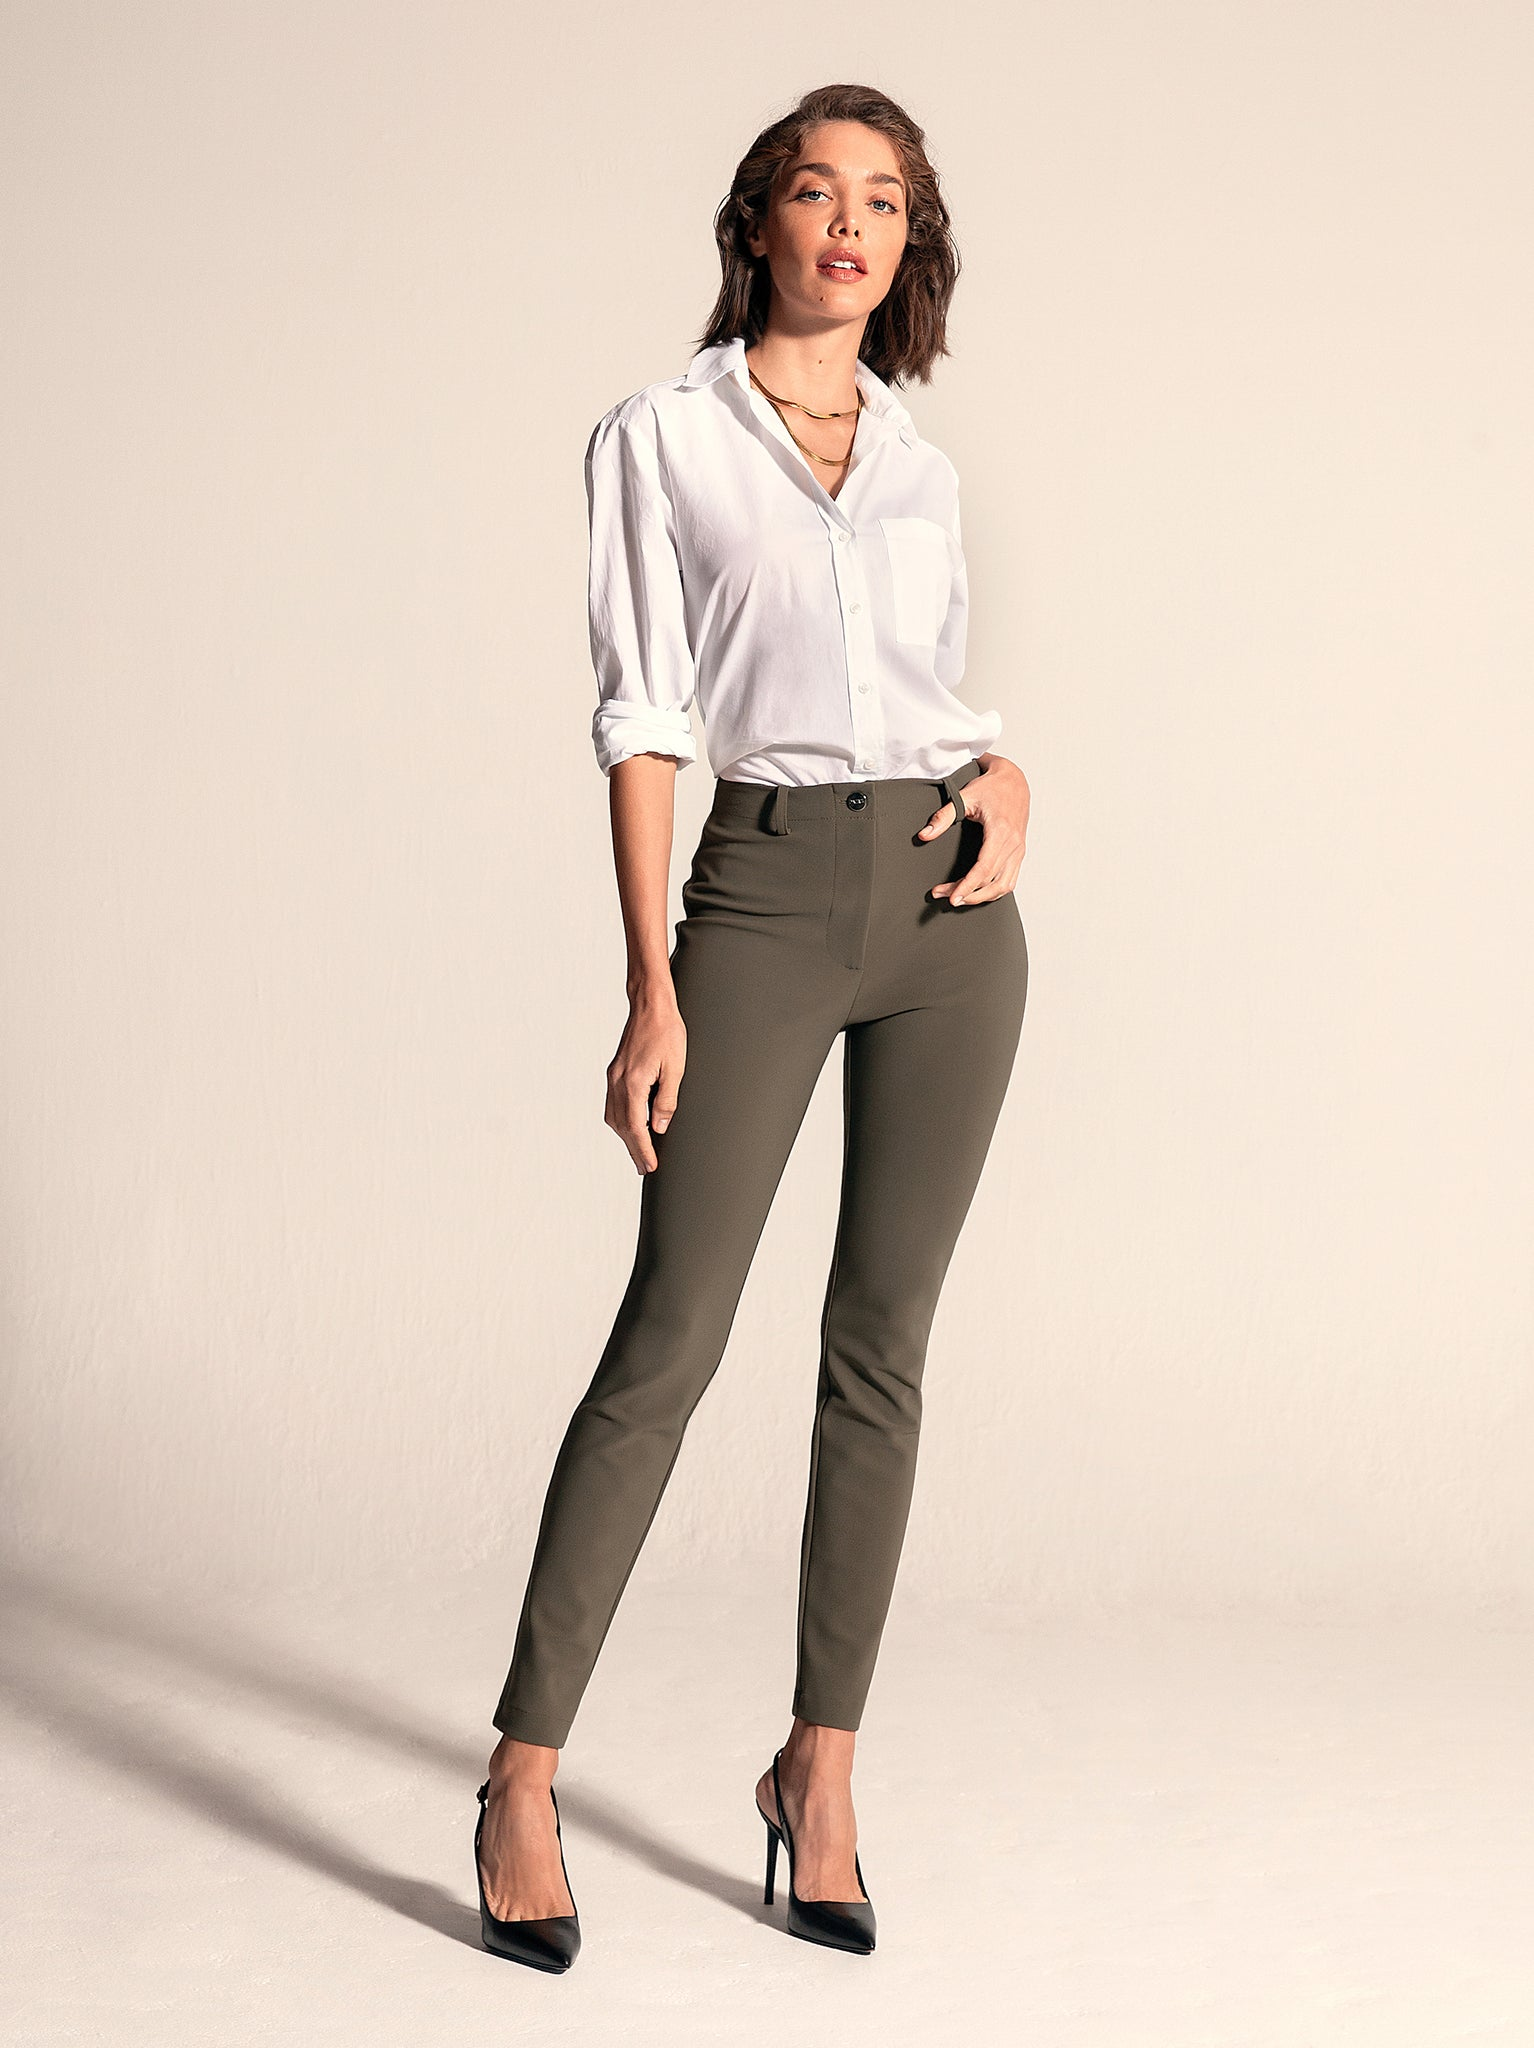 "BIANCA Skinny / 29"" Inseam / Army Green / Primary"